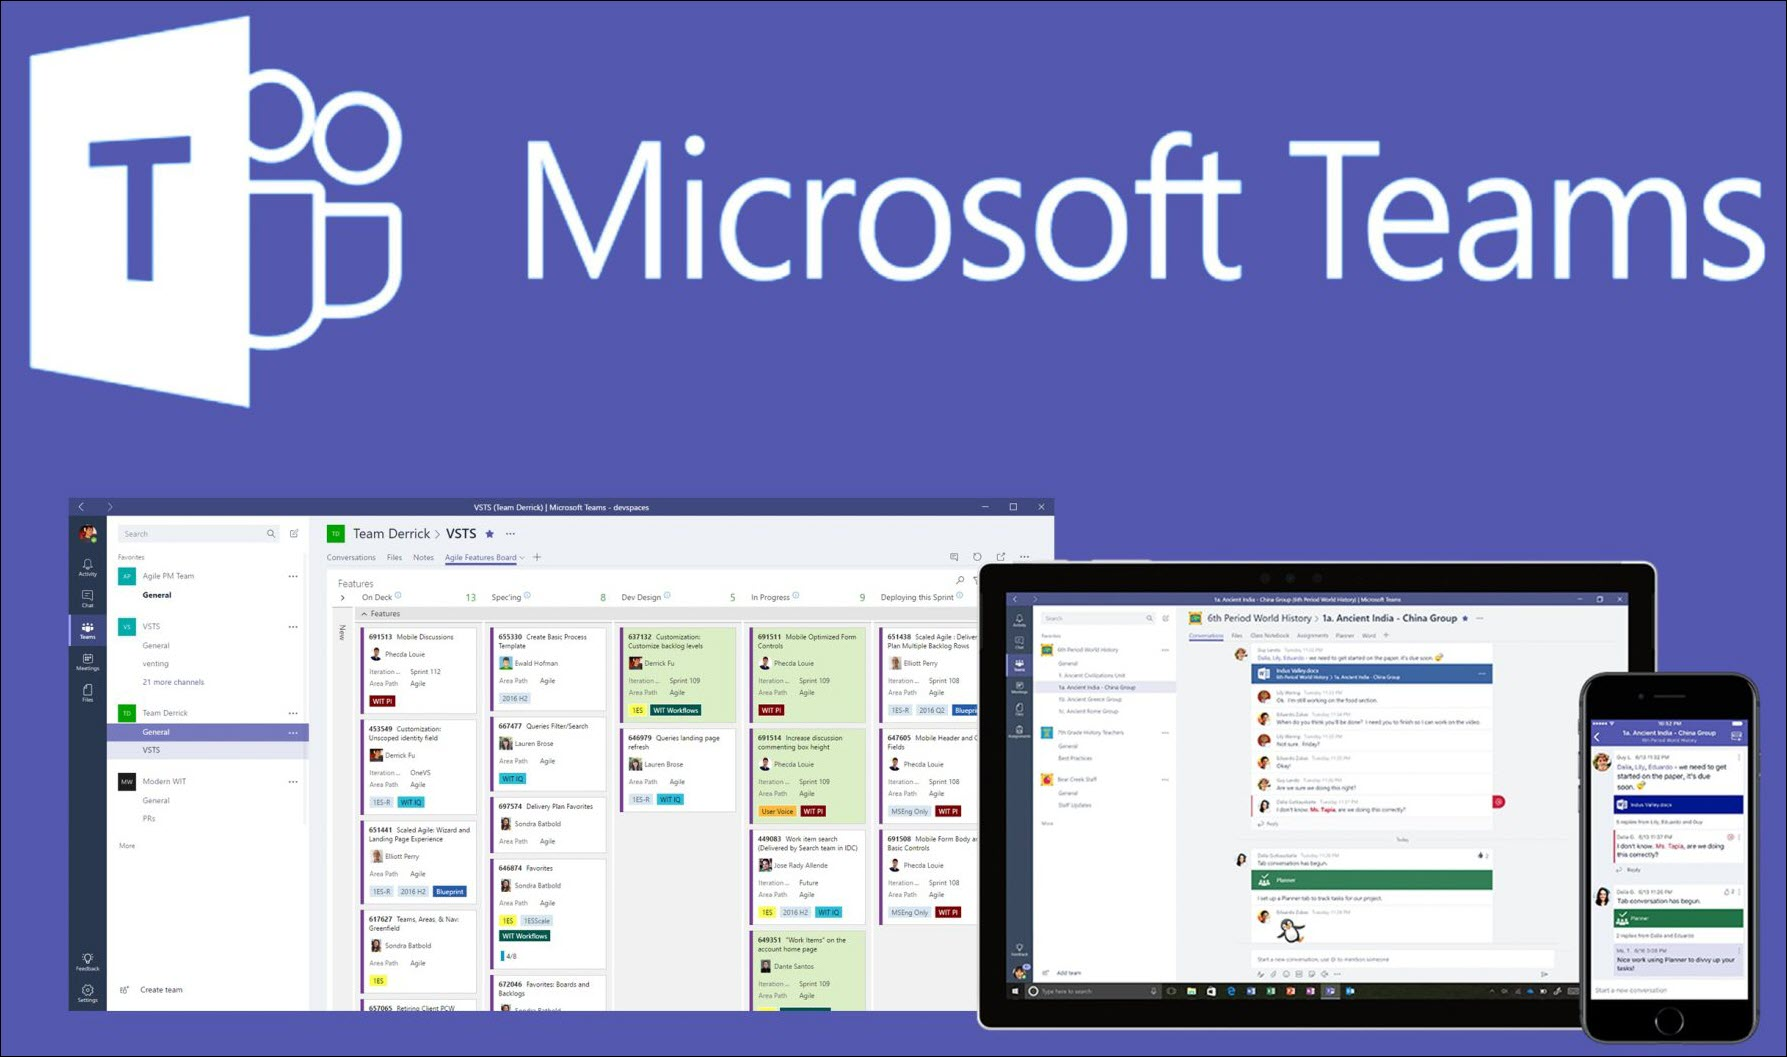 Image illustrating what Microsoft Teams looks like on different devices.